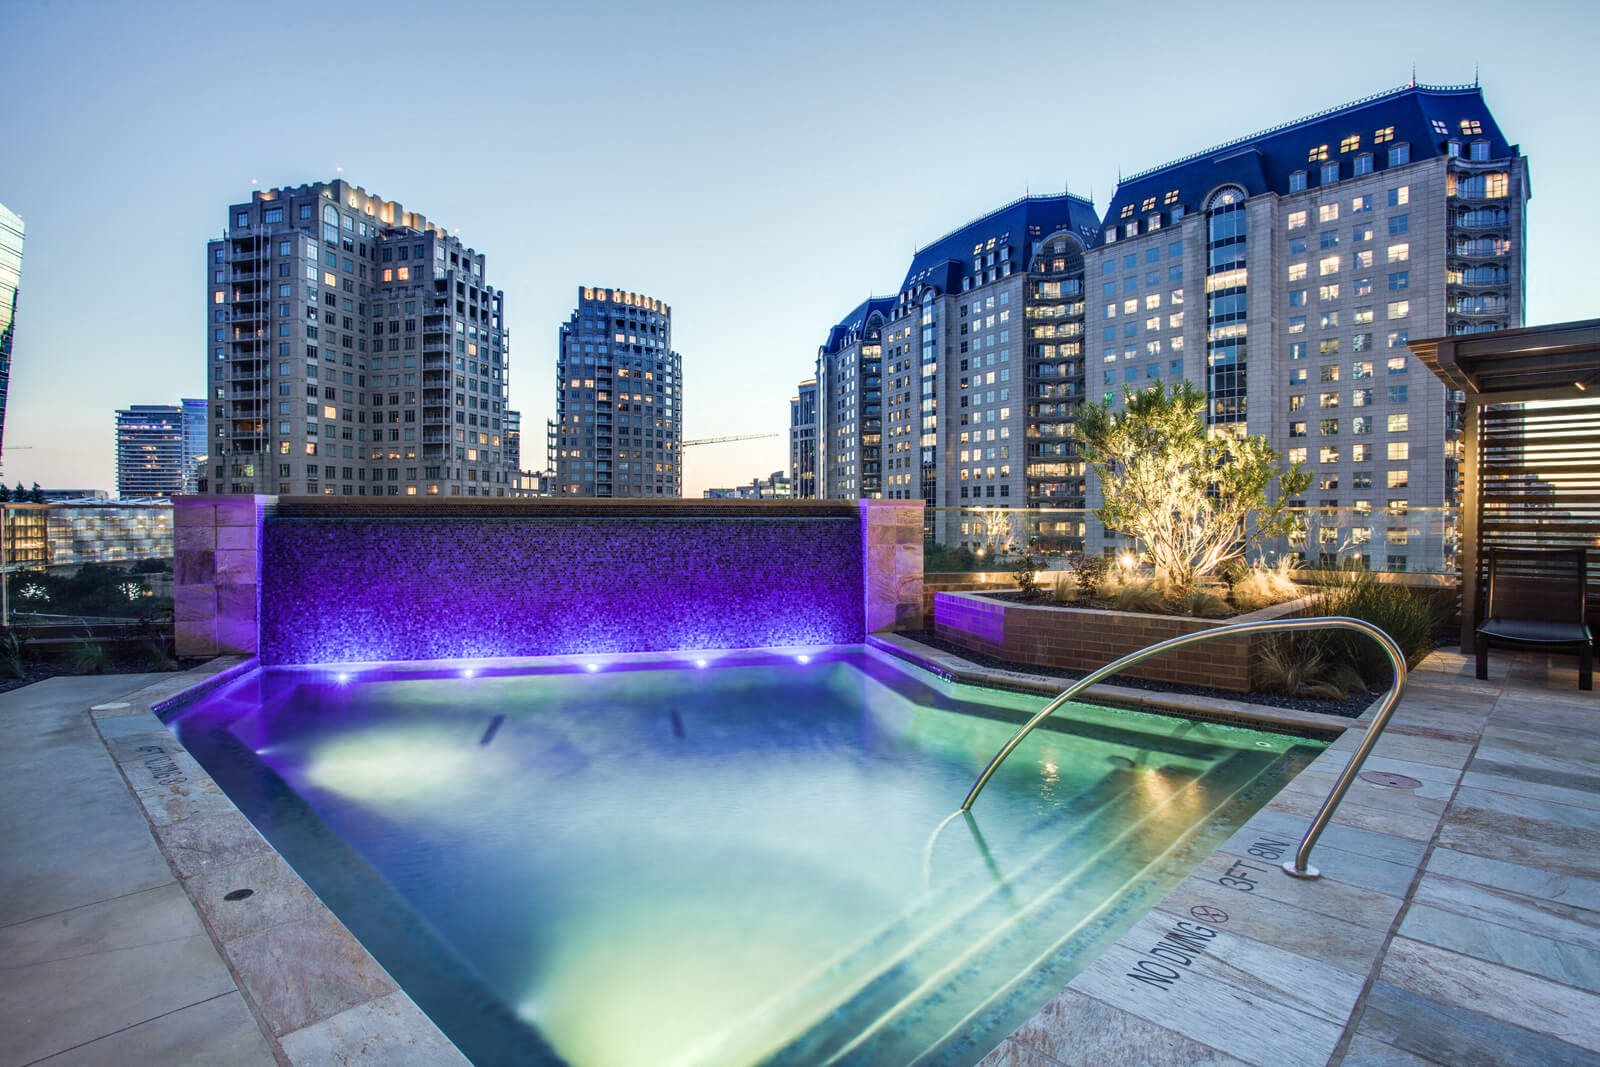 Glimmering, Nighttime Pool at The Jordan by Windsor, 75201, TX